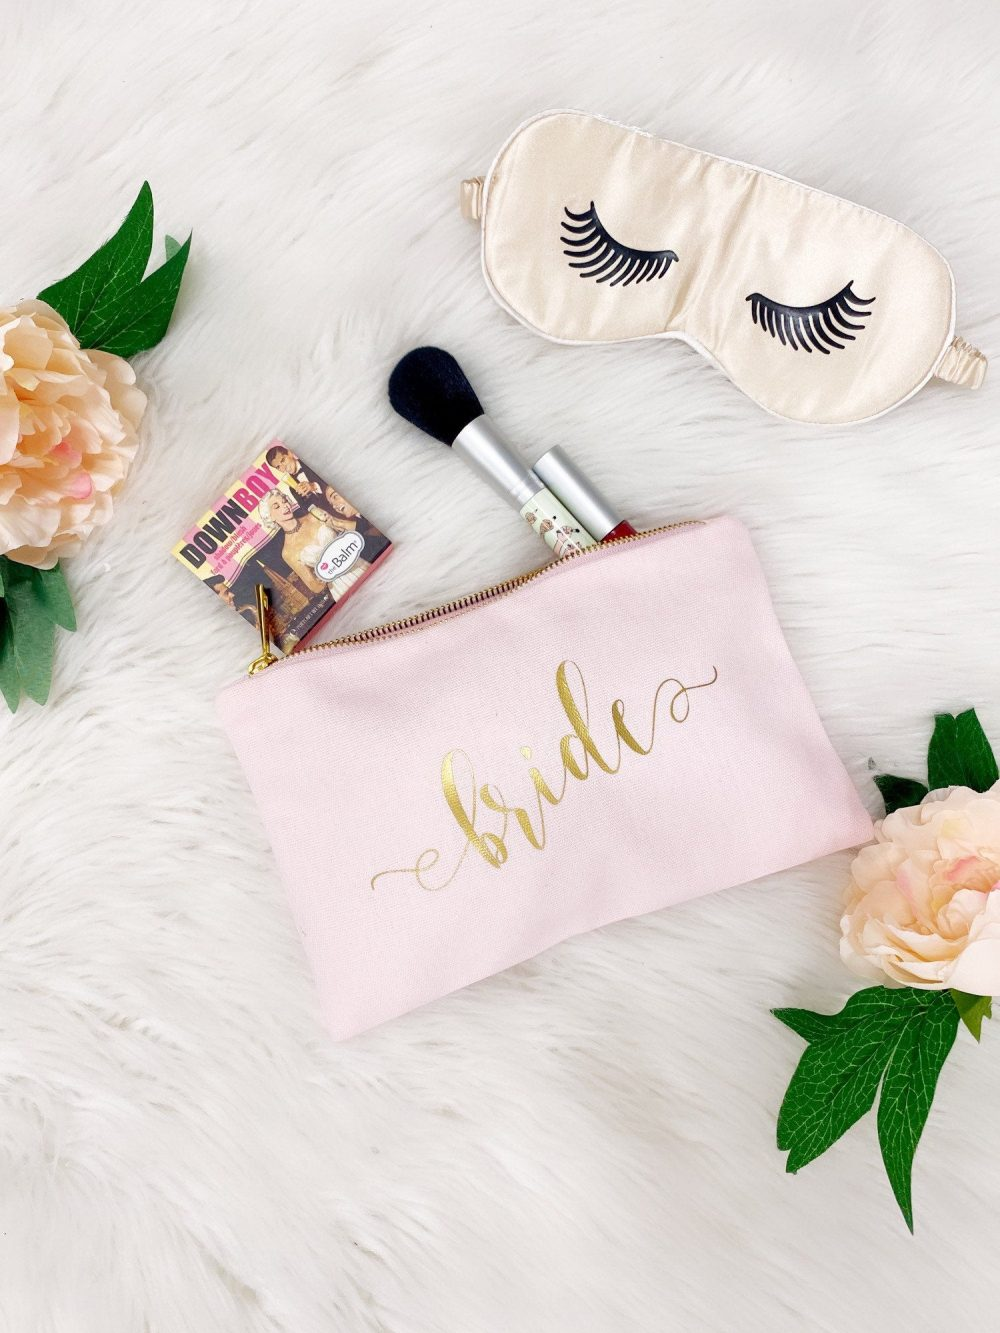 Bridesmaid Personalized Gifts, Wedding Make Up Bag, Gift For Her, Canvas Makeup Bag, Name Bags, Customized Bag